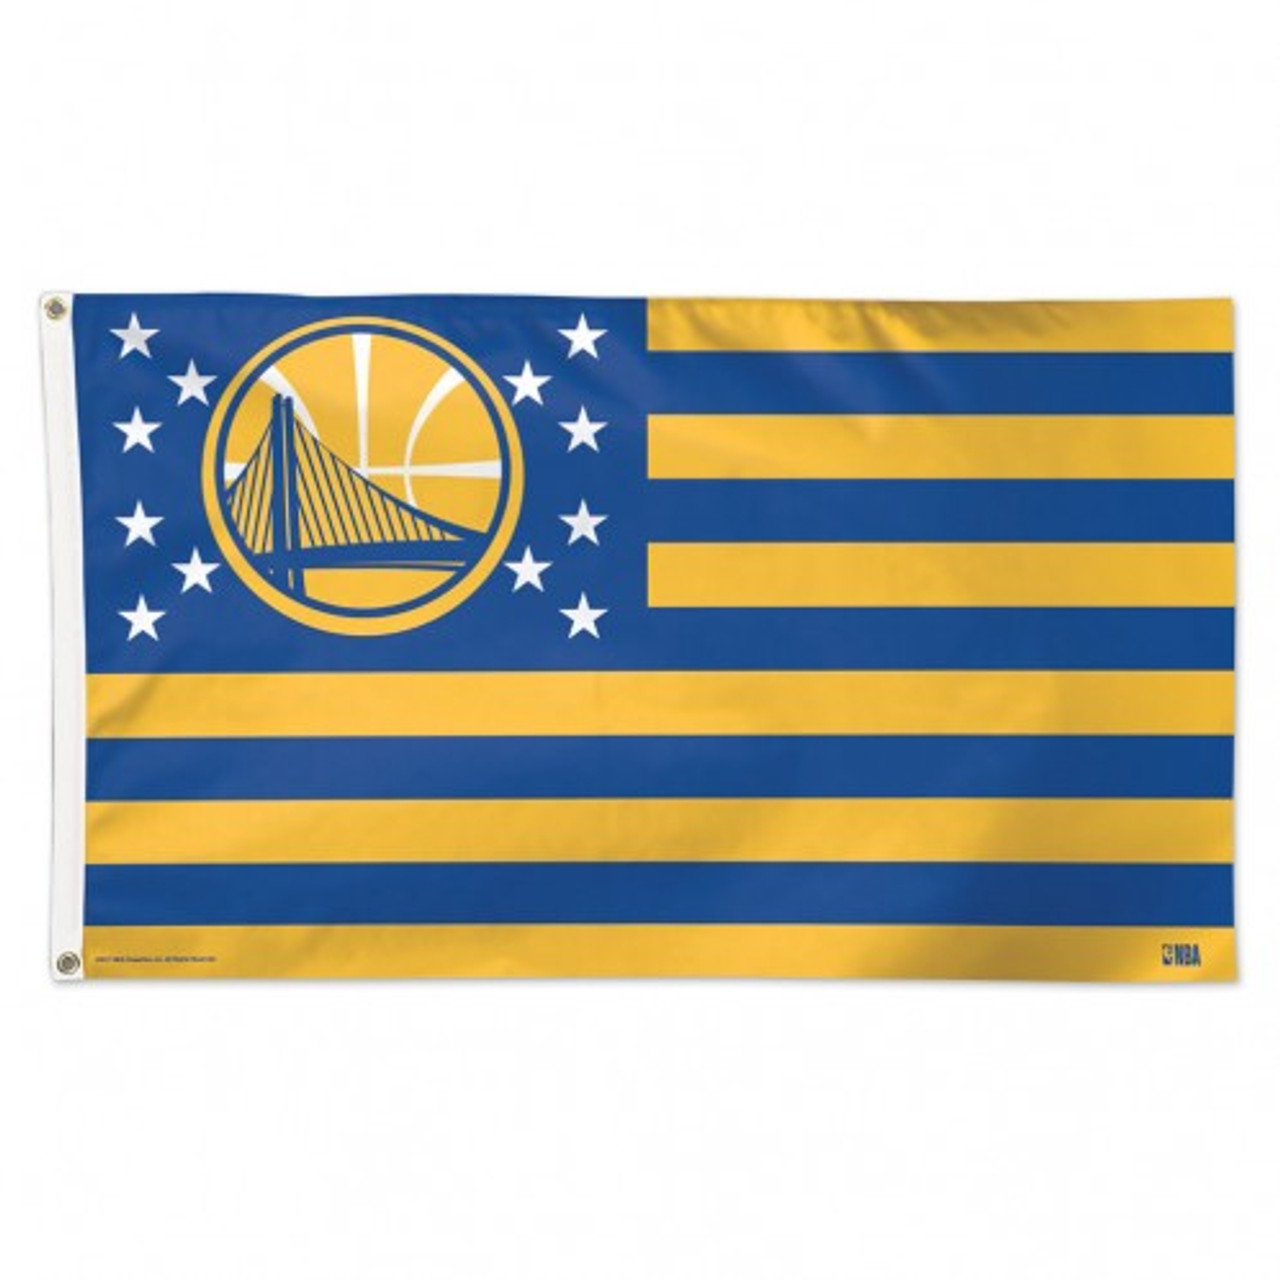 Golden State Warriors Flag 3x5 Deluxe Style Stars and Stripes Design - Special Order